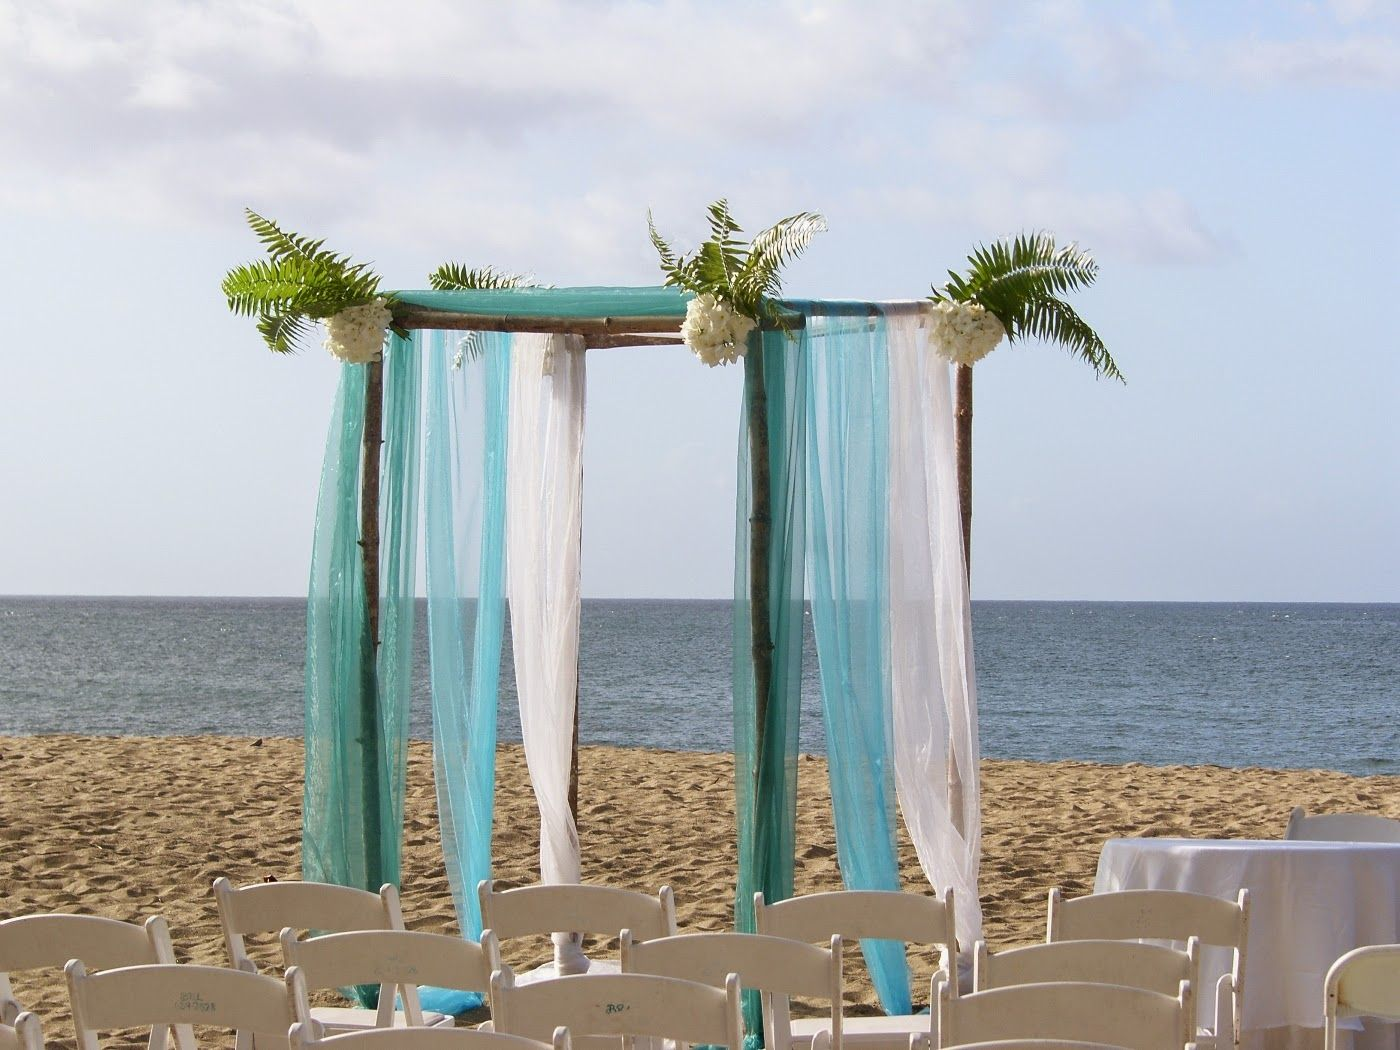 Wedding colors for a beach wedding  bpspotshpGGzcLxUIVDskUMDIAAAAAAAAIAk